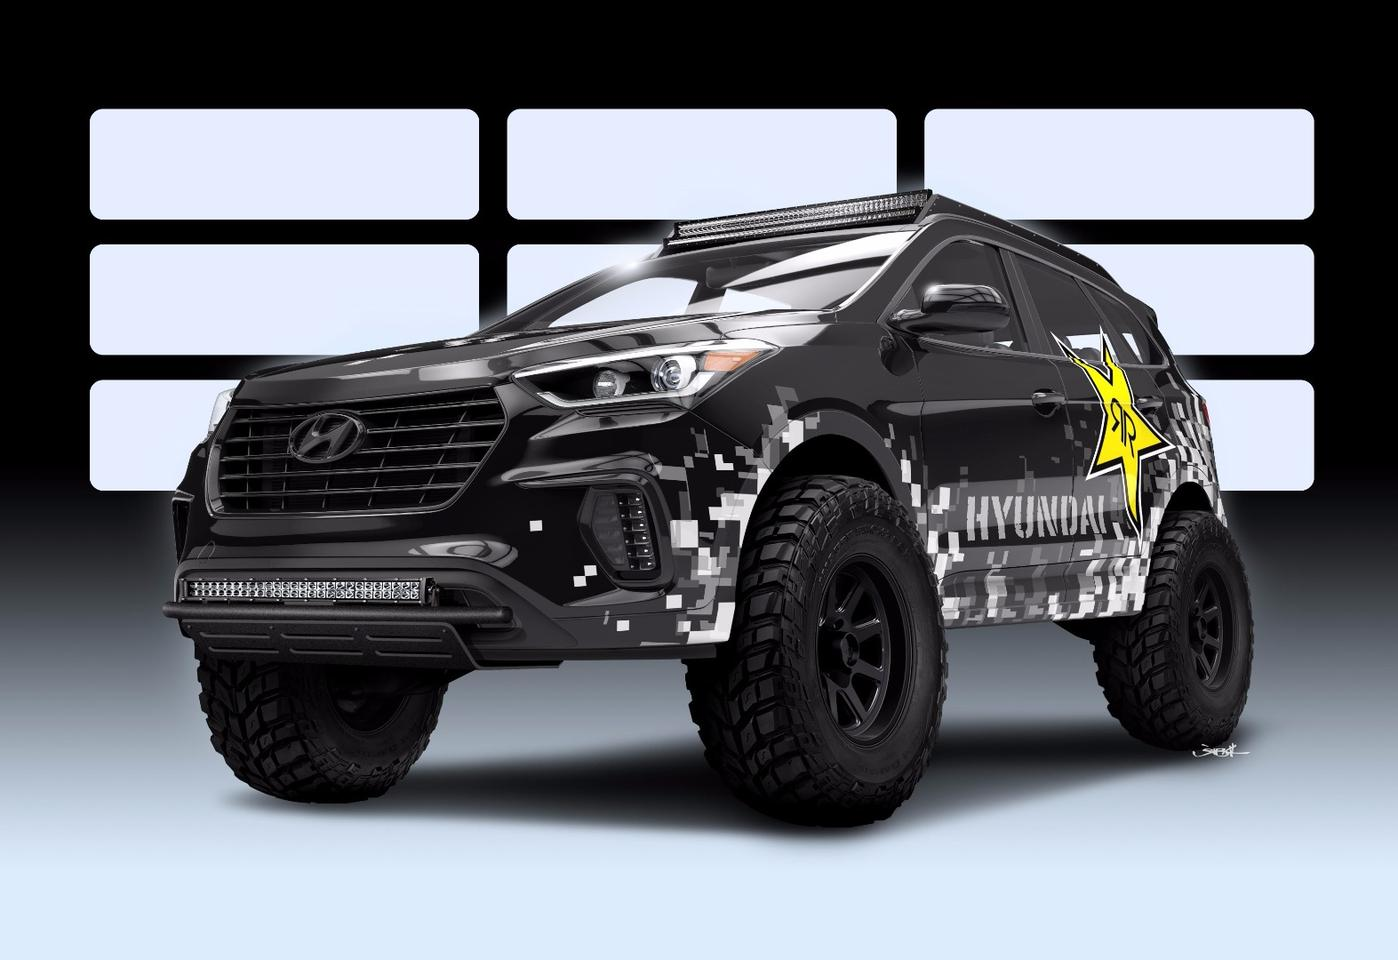 The RPG Hyundai Santa Fe will be among the wild tunes of SEMA 2016